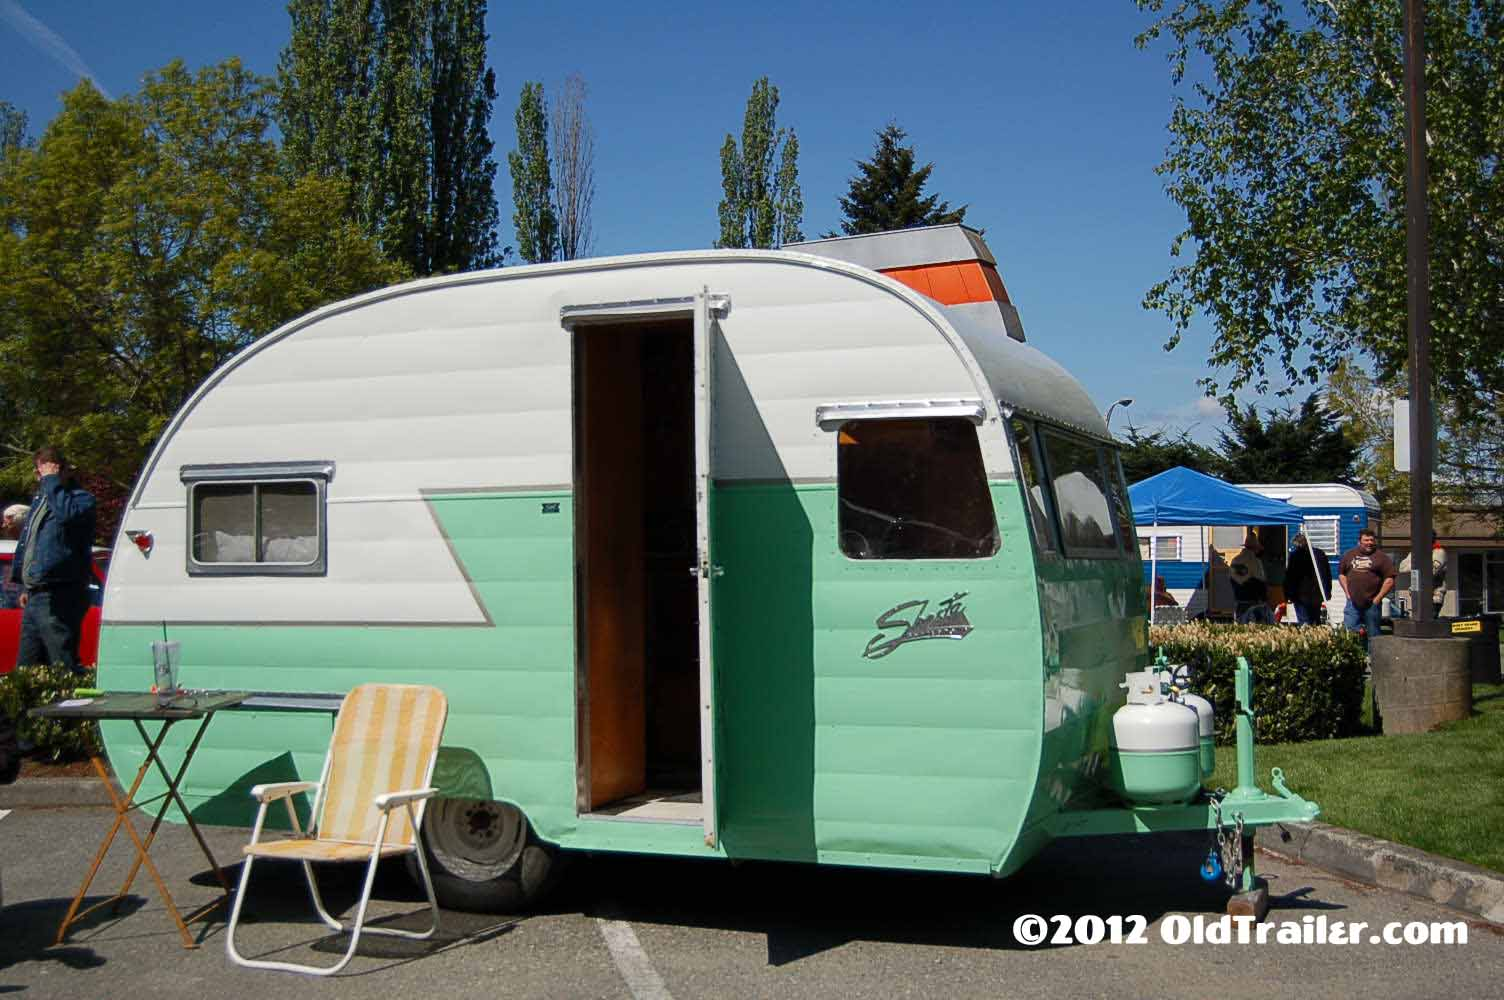 Vintage Shasta Trailer Pictures And History From